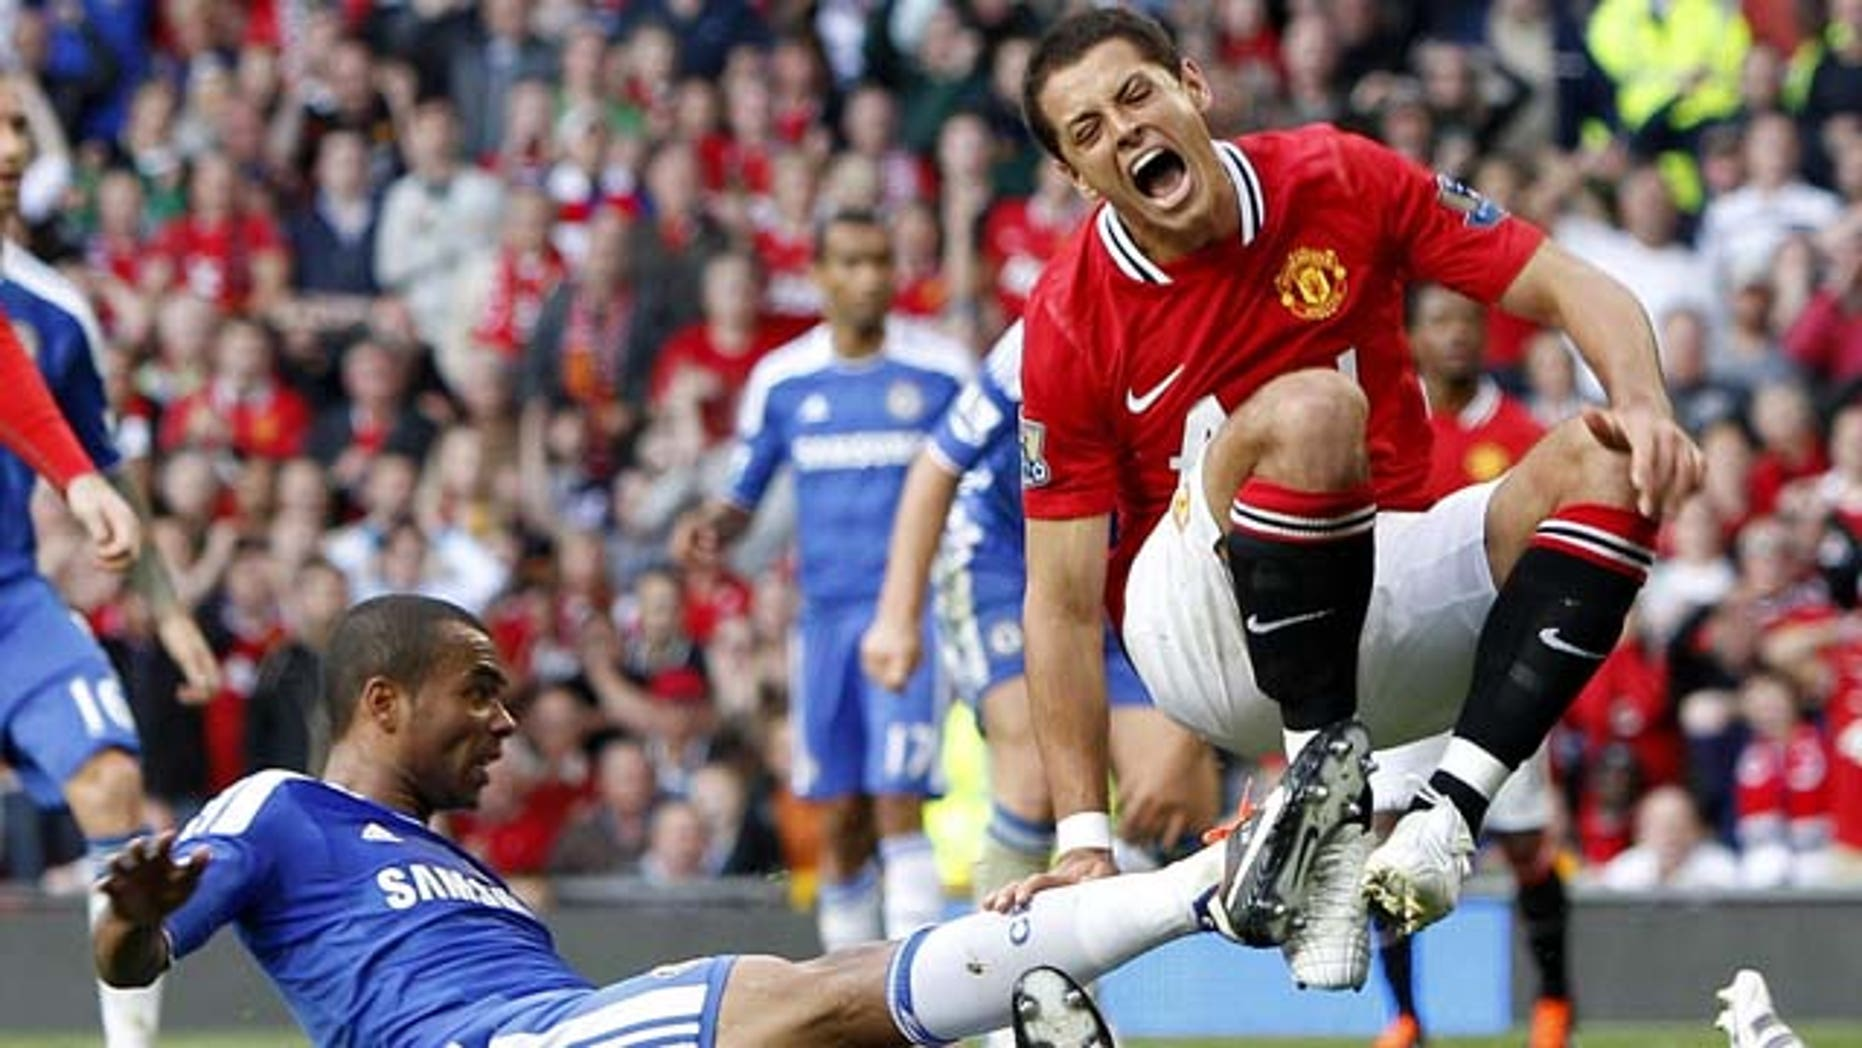 In this photo taken Sunday Sept. 18, 2011, Manchester United's Javier Hernandez reacts during a tough challenge from Chelsea's Ashley Cole, left, during the English Premier League soccer match at Old Trafford, Manchester. Hernandez limped off in the second half after the challenge by Cole. (AP Photo/Peter Byrne, PA) UNITED KINGDOM OUT